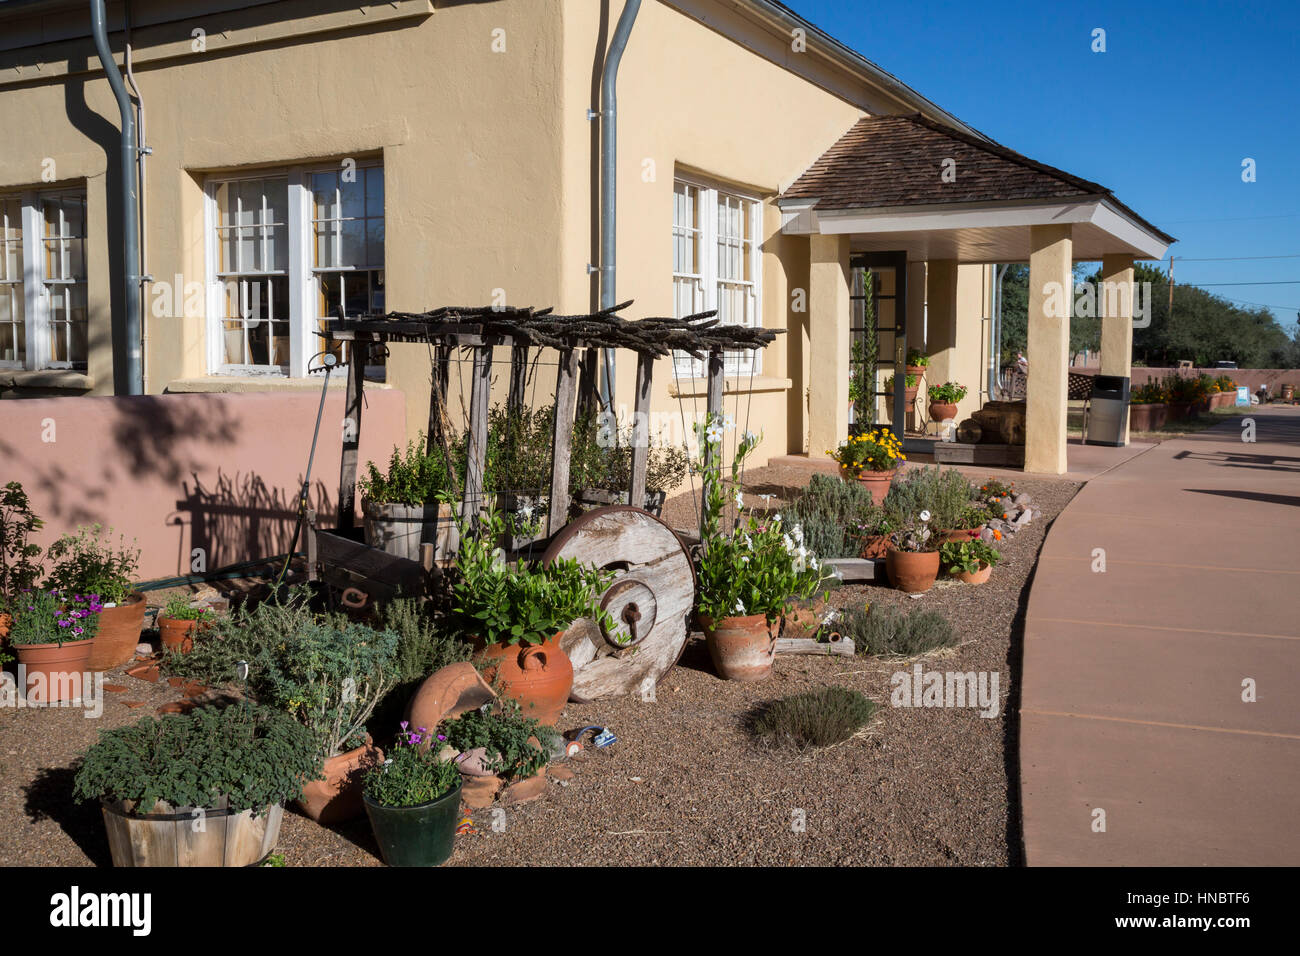 Tubac, Arizona - Tubac Presidio State Historic Park preserves artifacts from 2000 years of human settlement in the - Stock Image